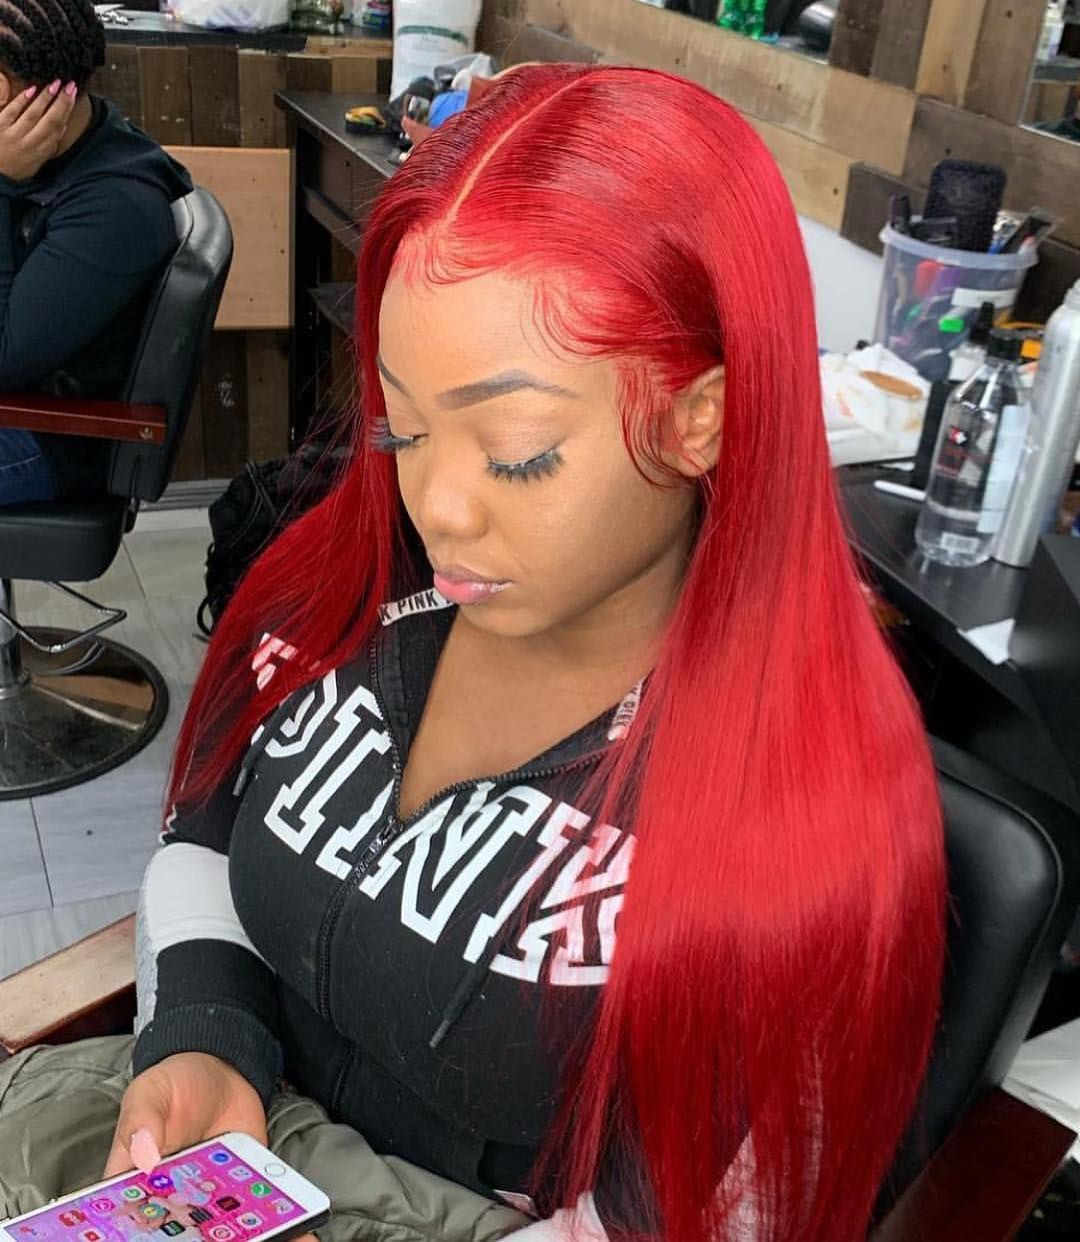 Red Weave Hairstyles With Color Full Lace Wigs For Black Women Red Weave Hairstyles Hair Styles Thin Hair Styles For Women